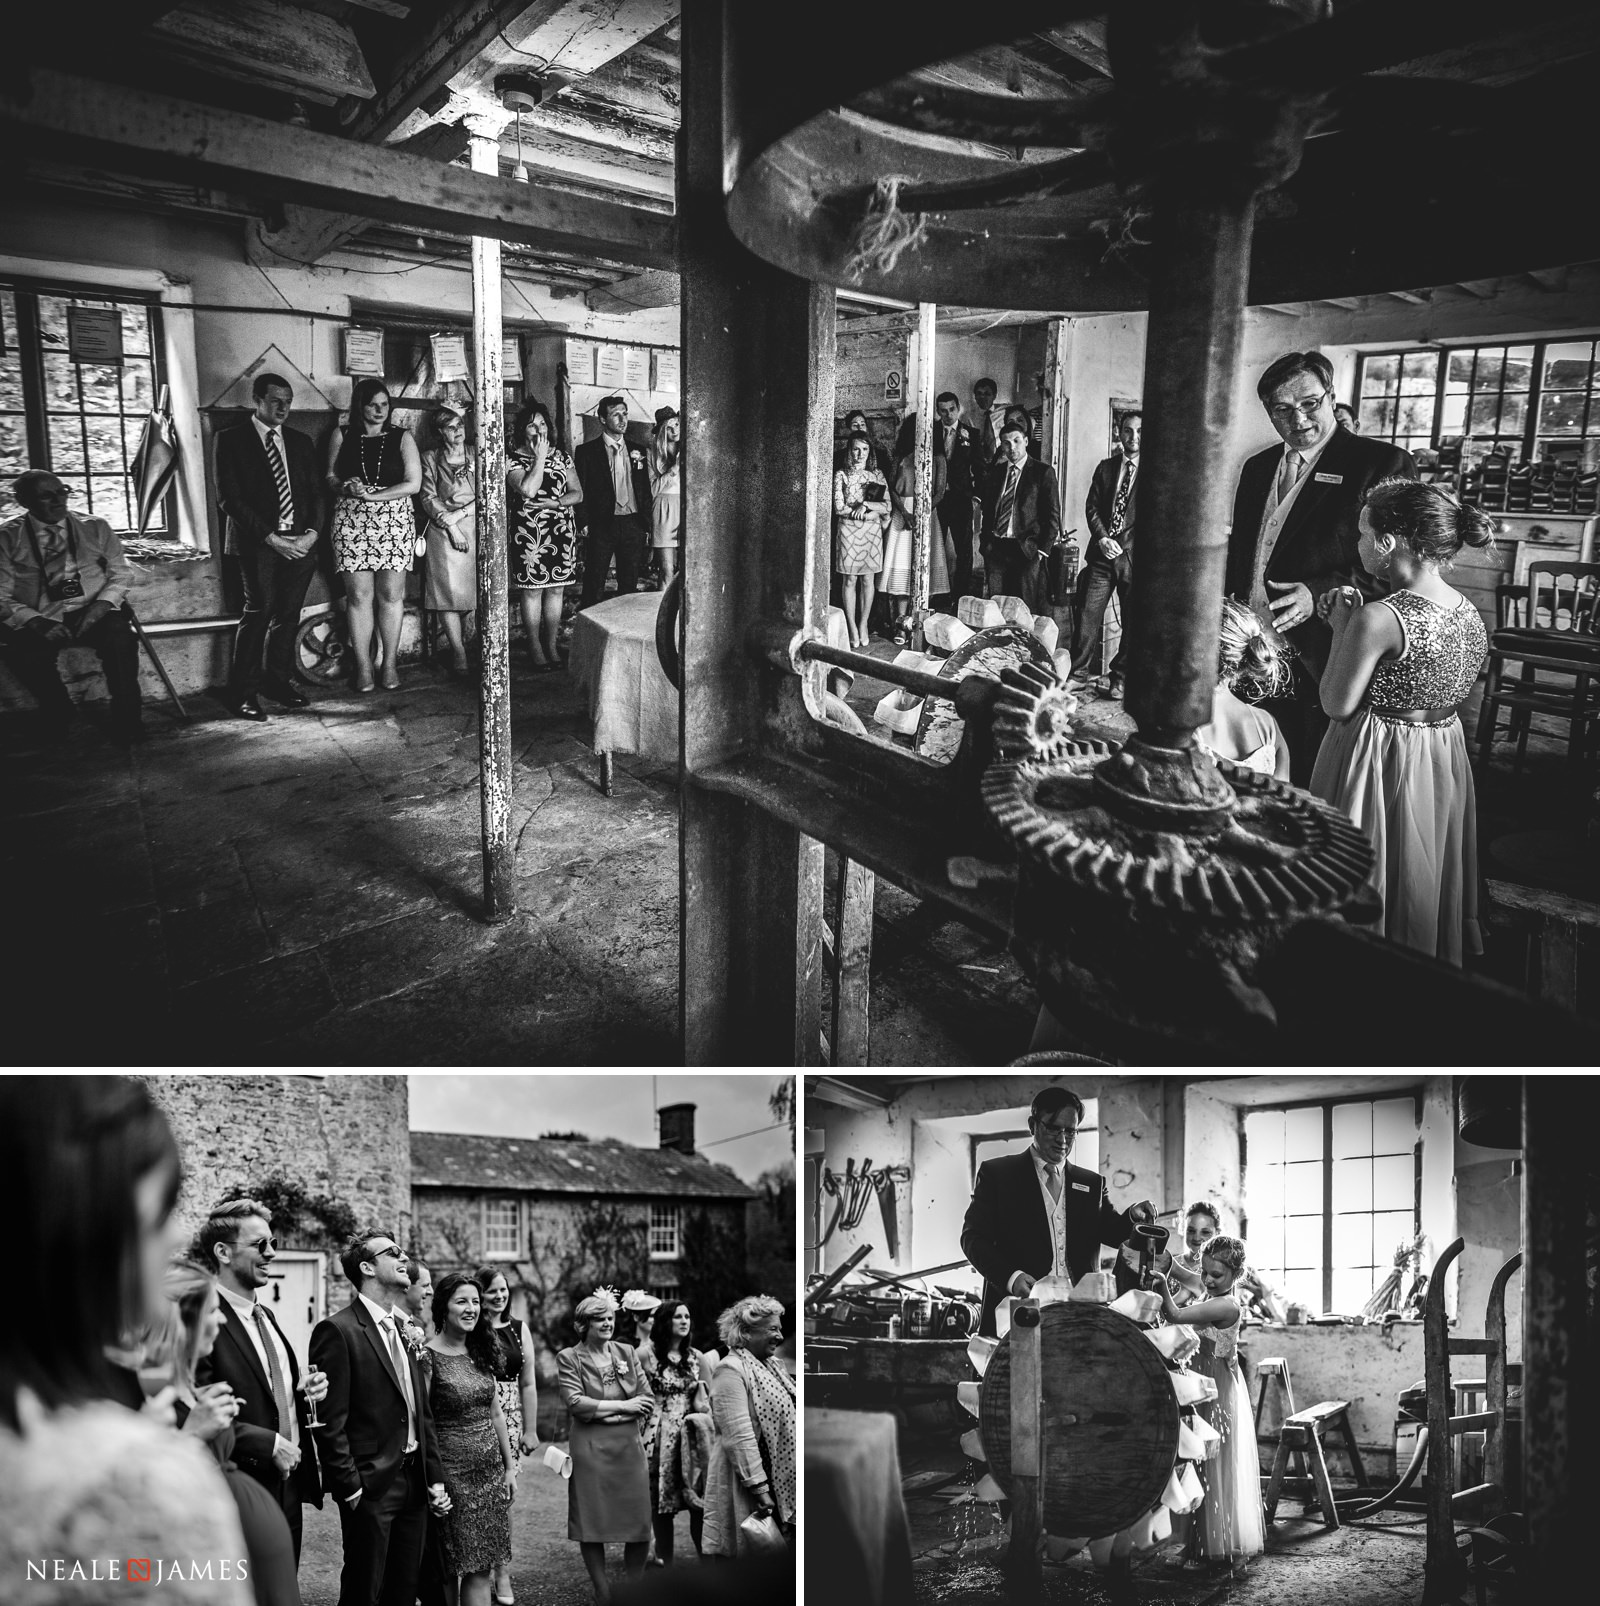 The owner of Gants Mill in Somerset gives wedding guests a guided tour of the working mill